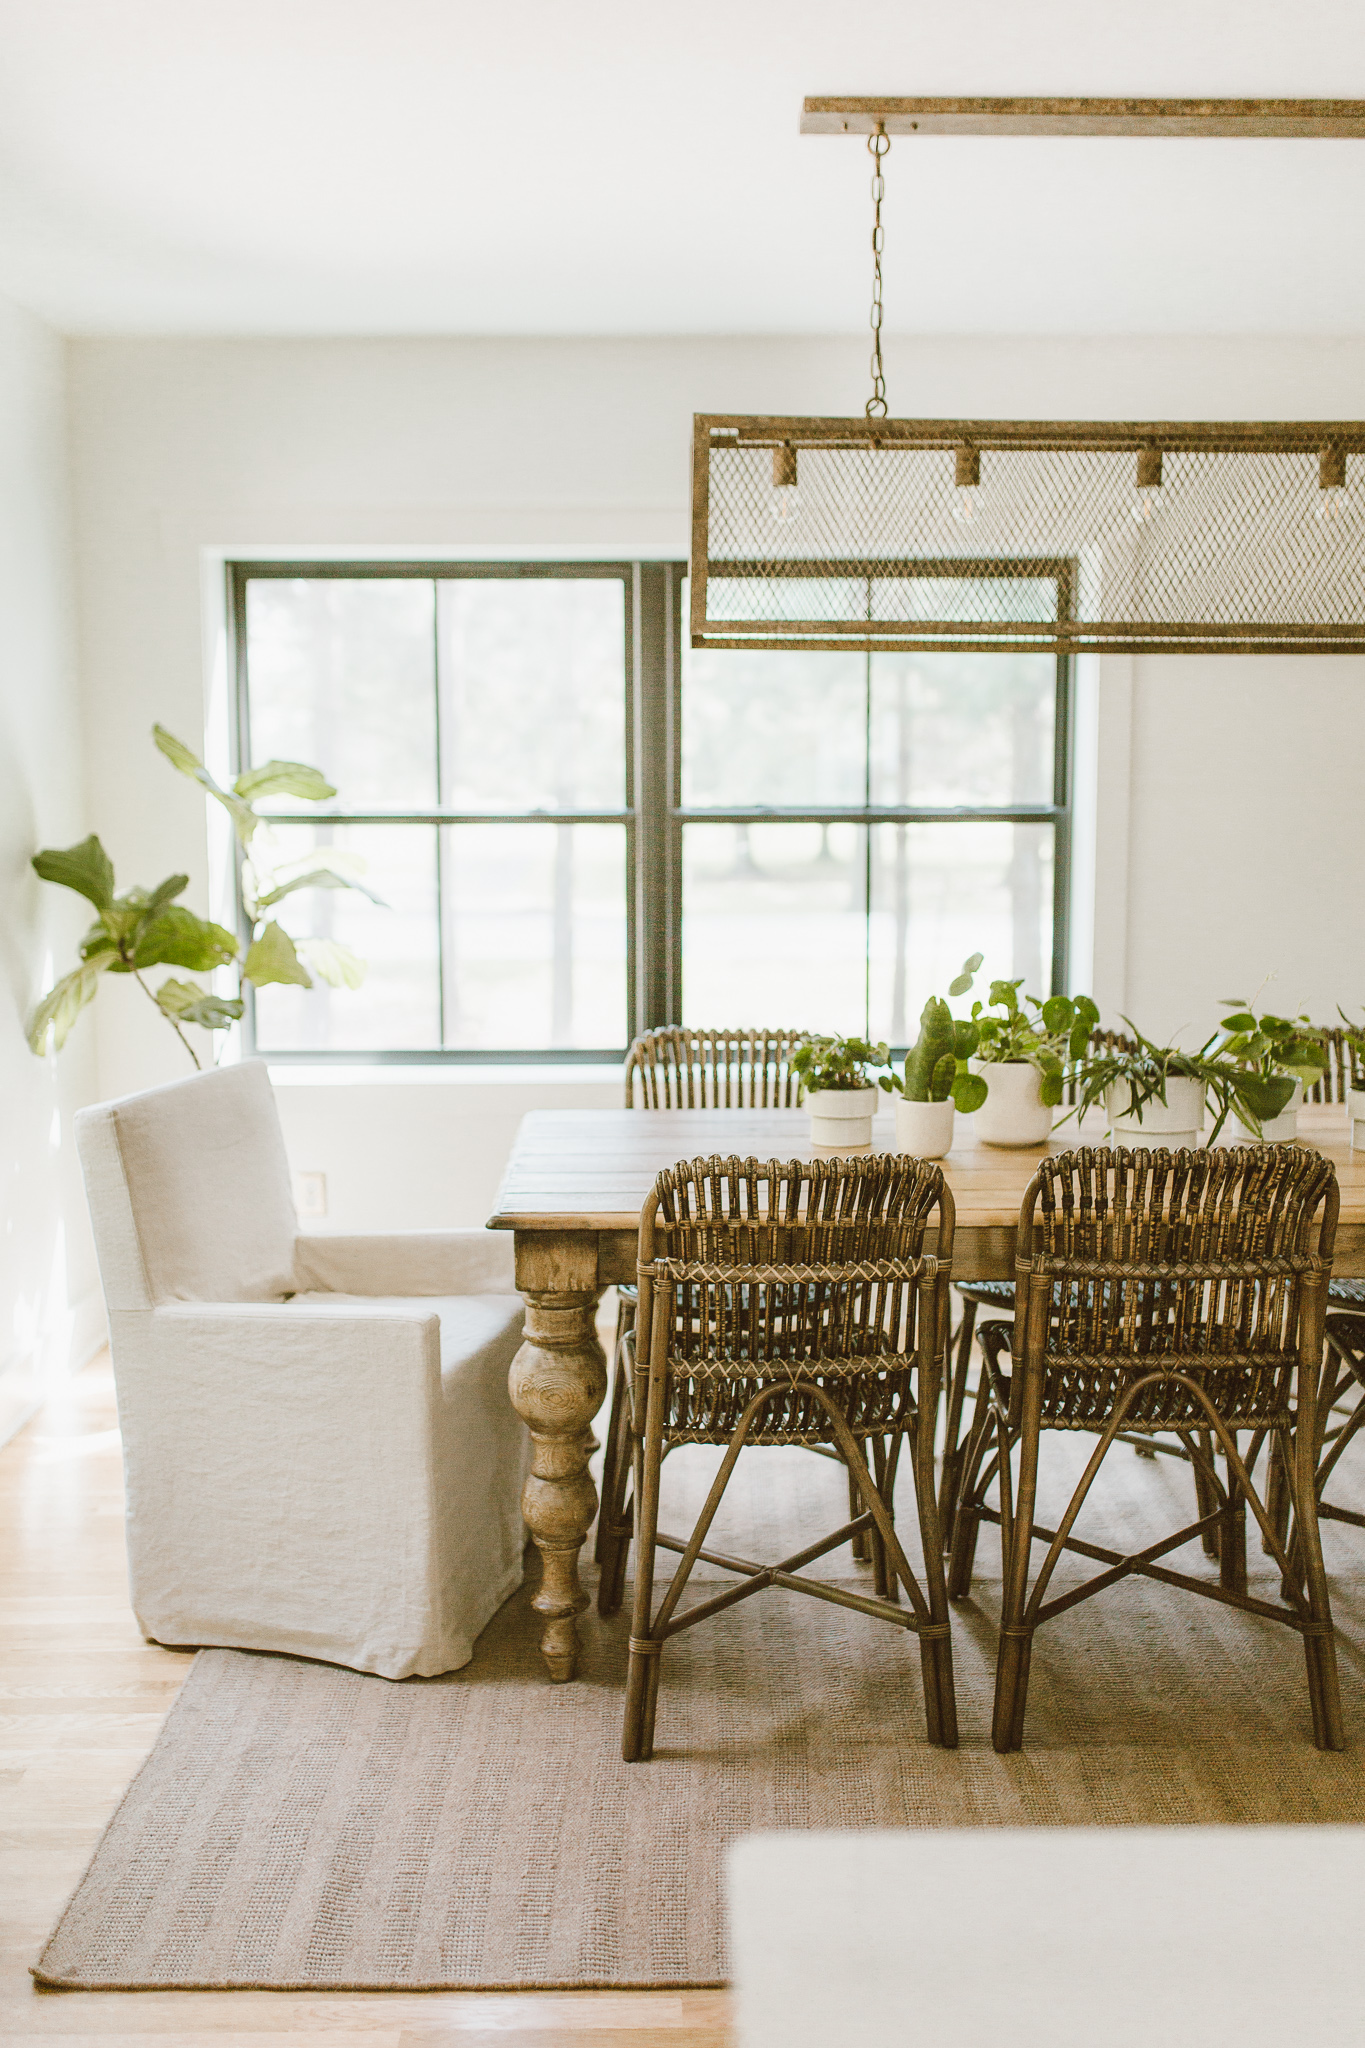 design-dining-space-tips-forthehome-000.jpg